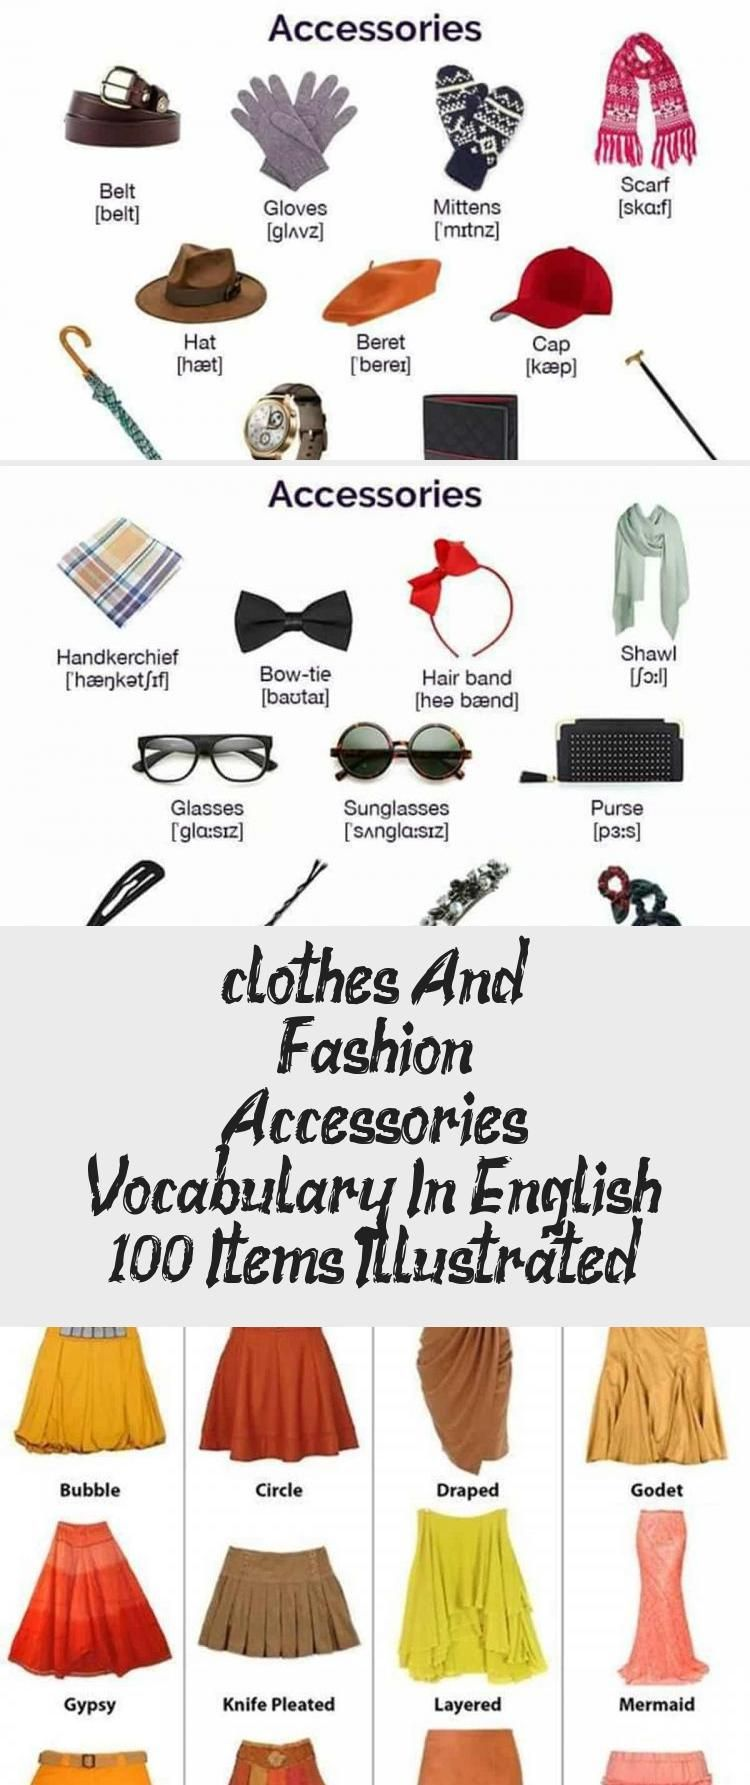 Clothes And Fashion Accessories Vocabulary In English 100 Items Illustrated Shoes In 2020 Fashion Accessories Fashion Clothes